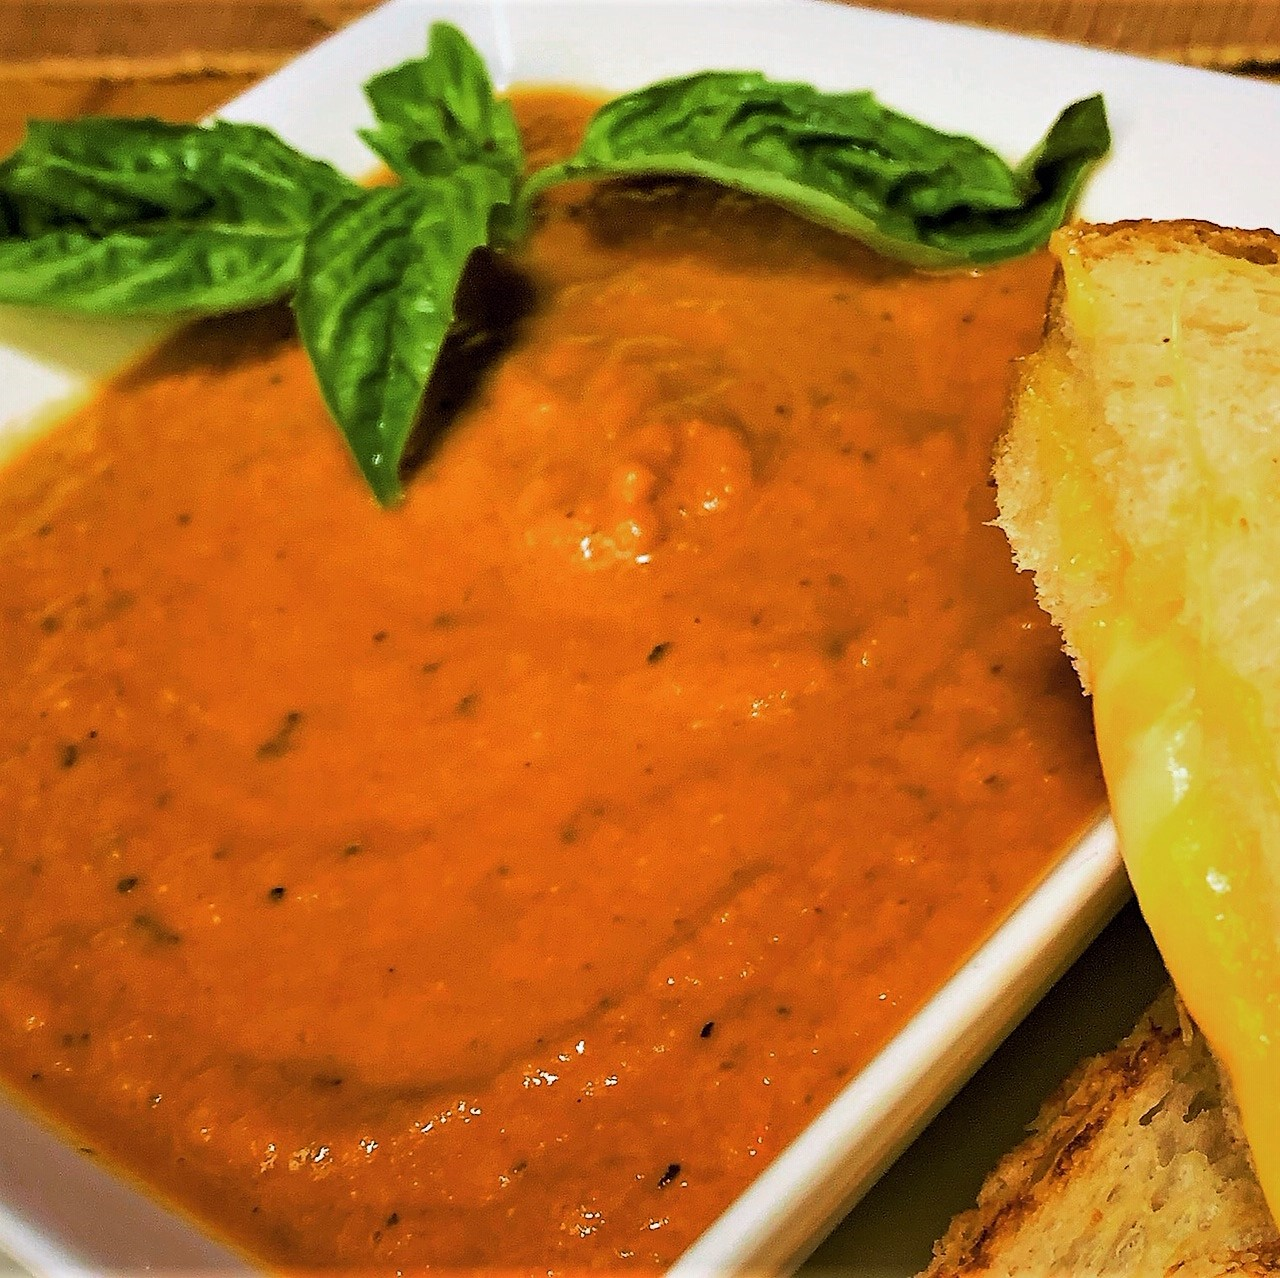 Our plated Tomato Basil Soup from Jolly Holiday Bakery Cafe